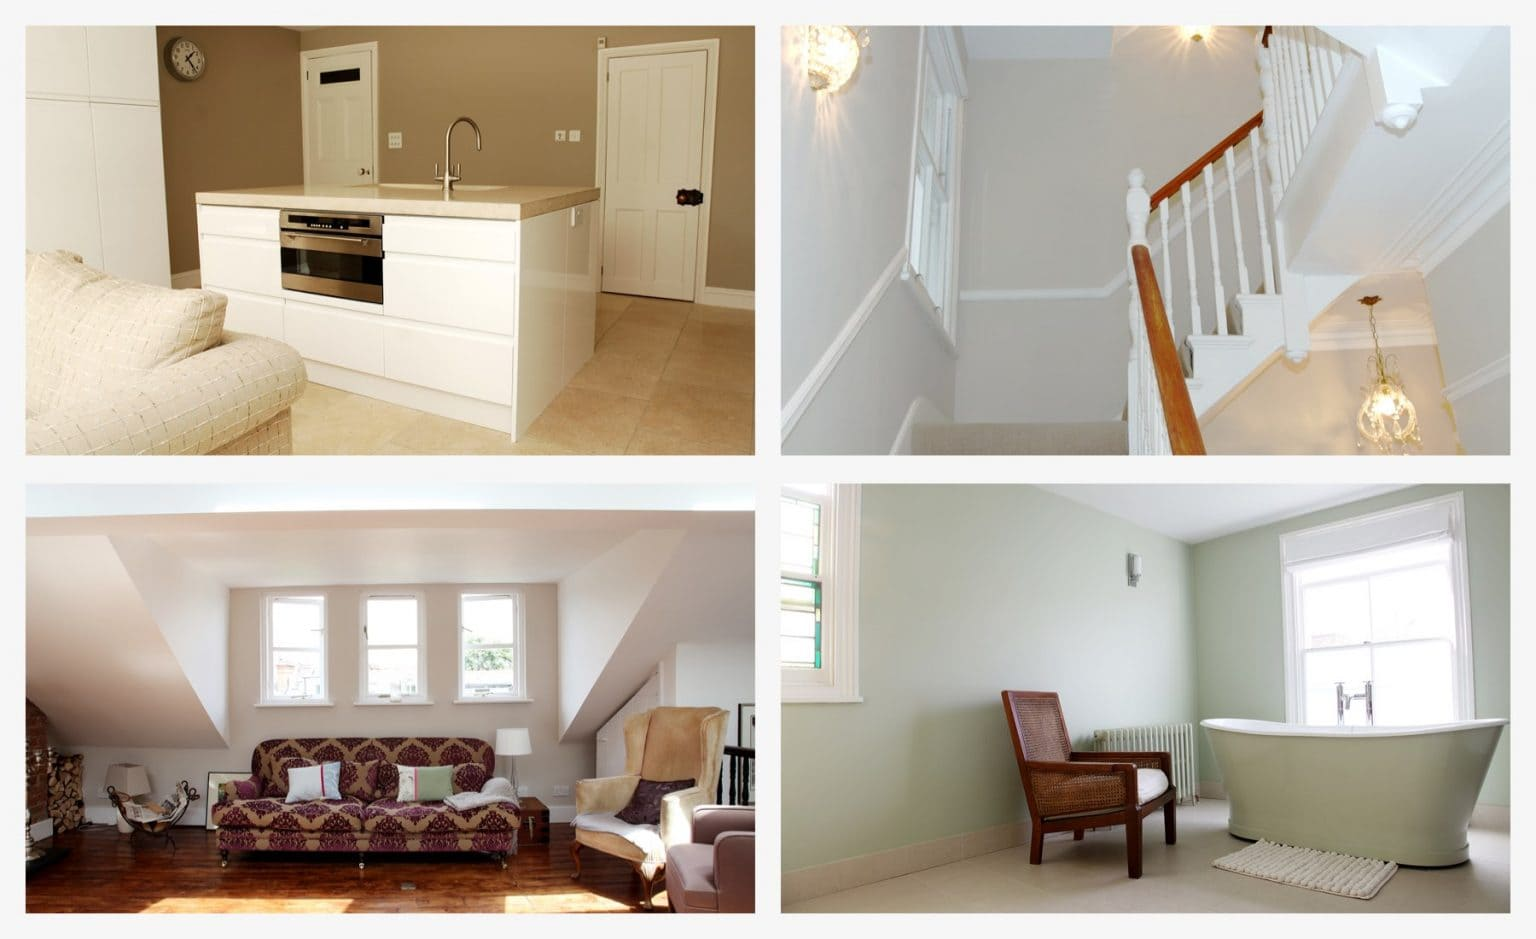 Interior painting and decorating image gallery